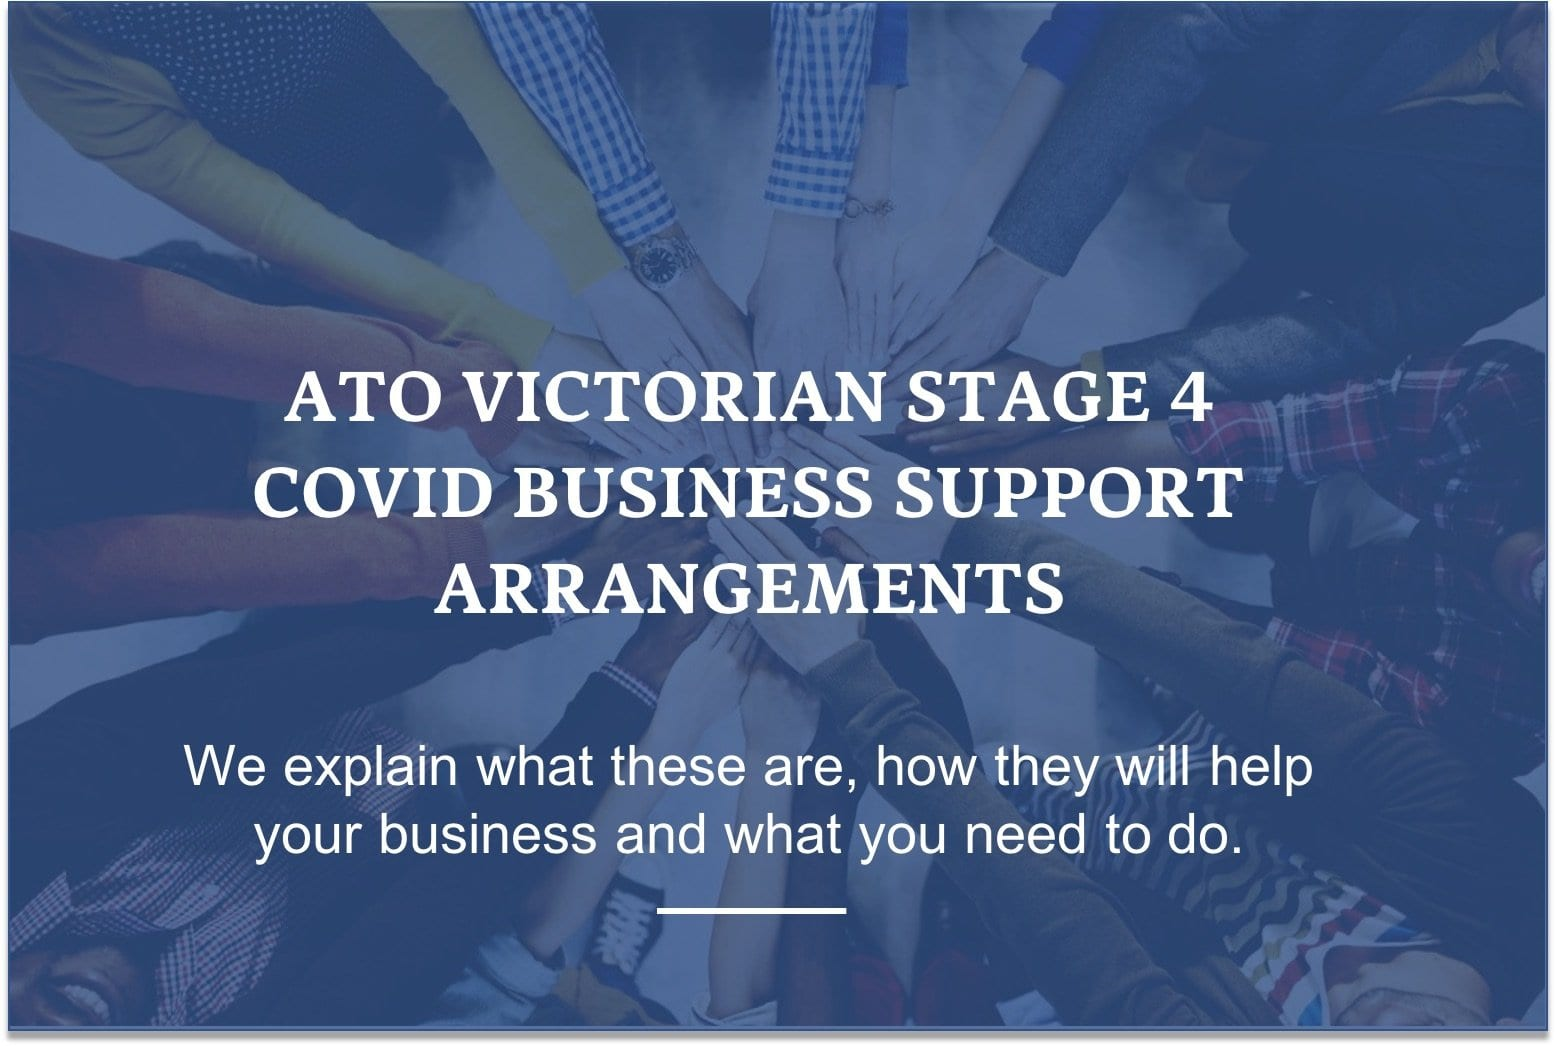 ATO Support For Stage 4 Restrictions in Victoria.